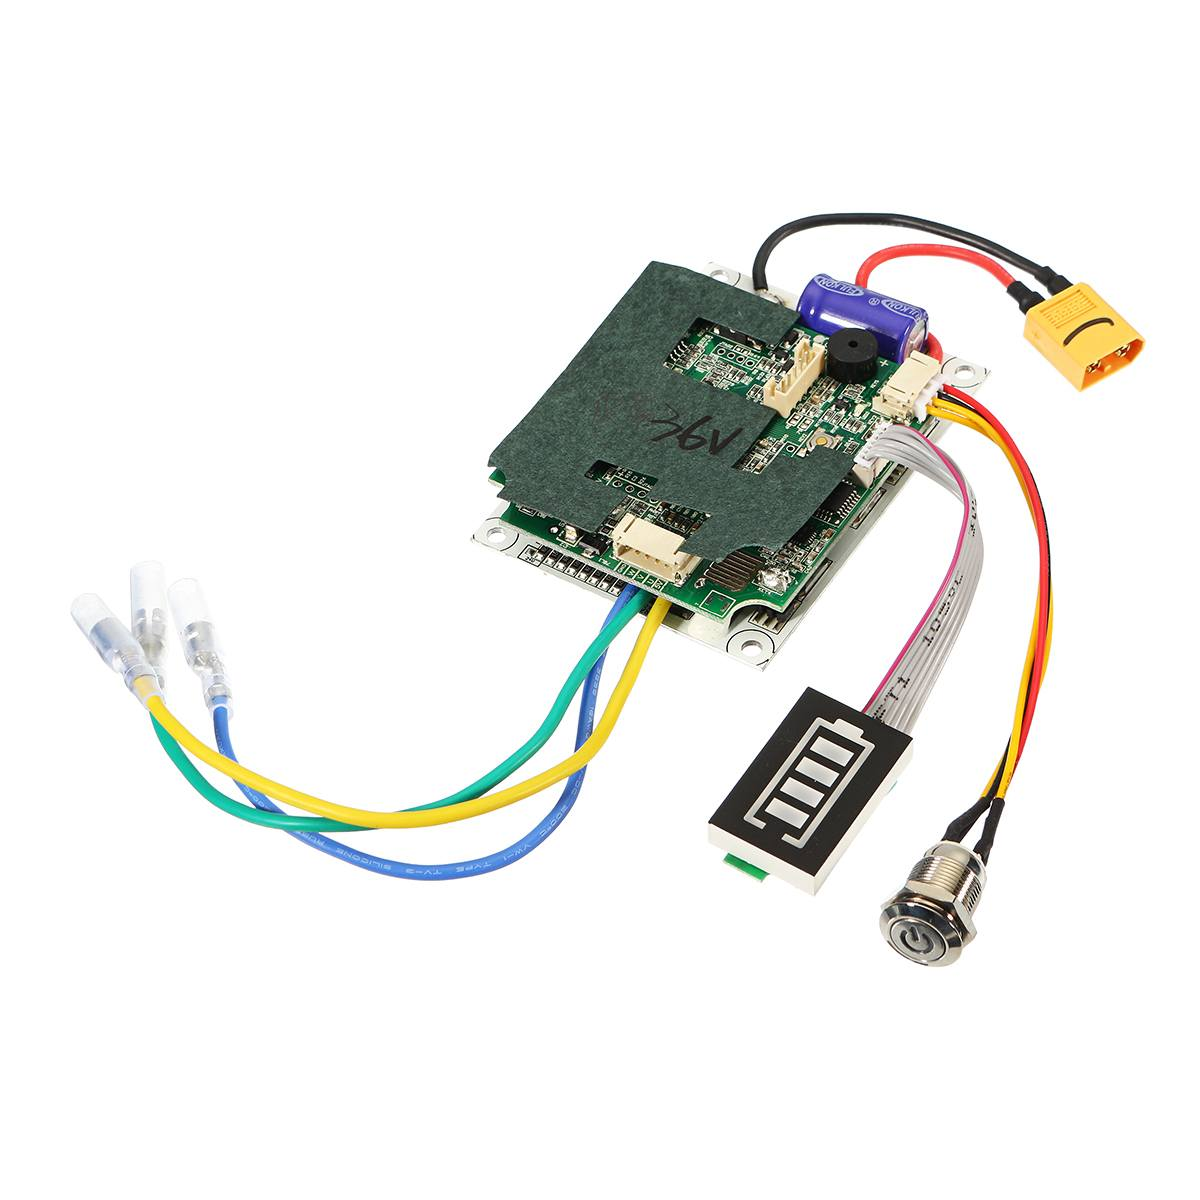 24/36V Single Belt Motor Electric Skateboard Controller Longboard ESC Substitute Parts Scooter Mainboard Instrument Tools 38